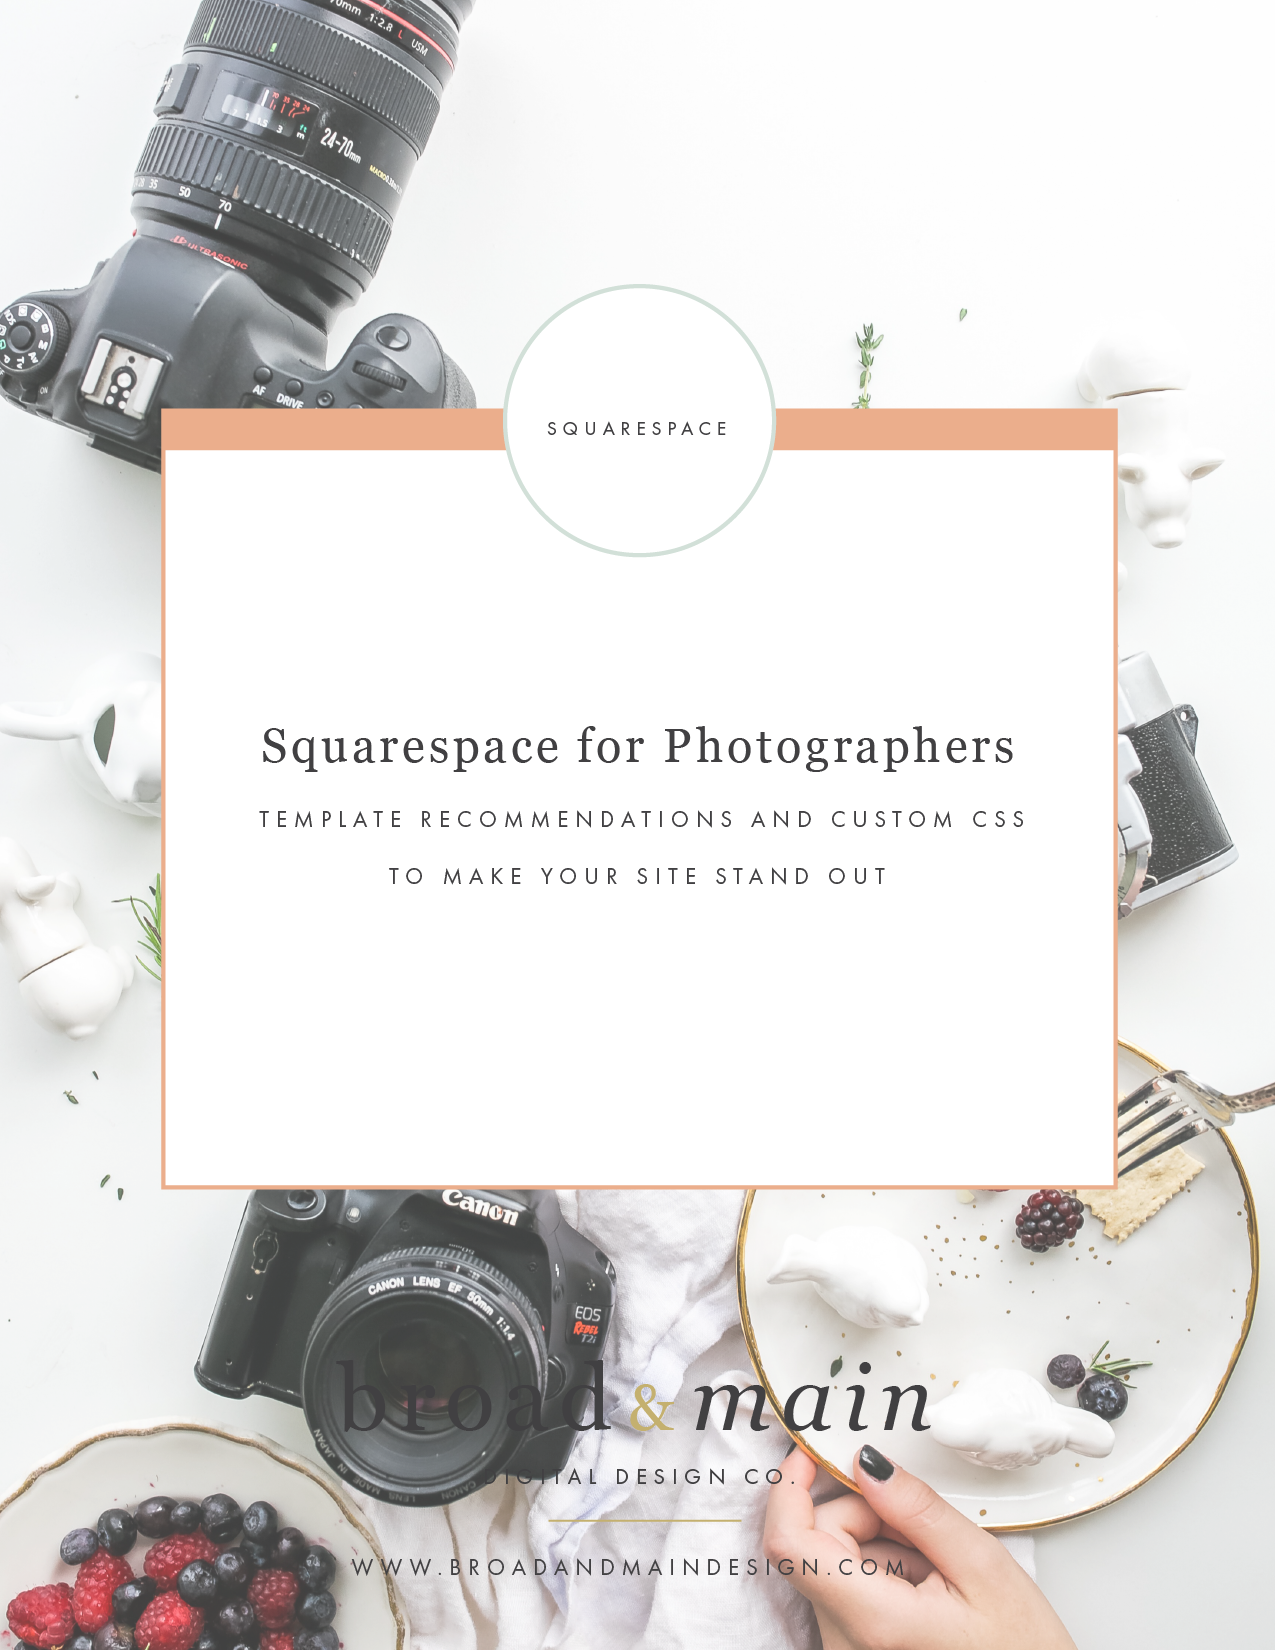 Squarespace For Photographers Template Recommendations And Custom